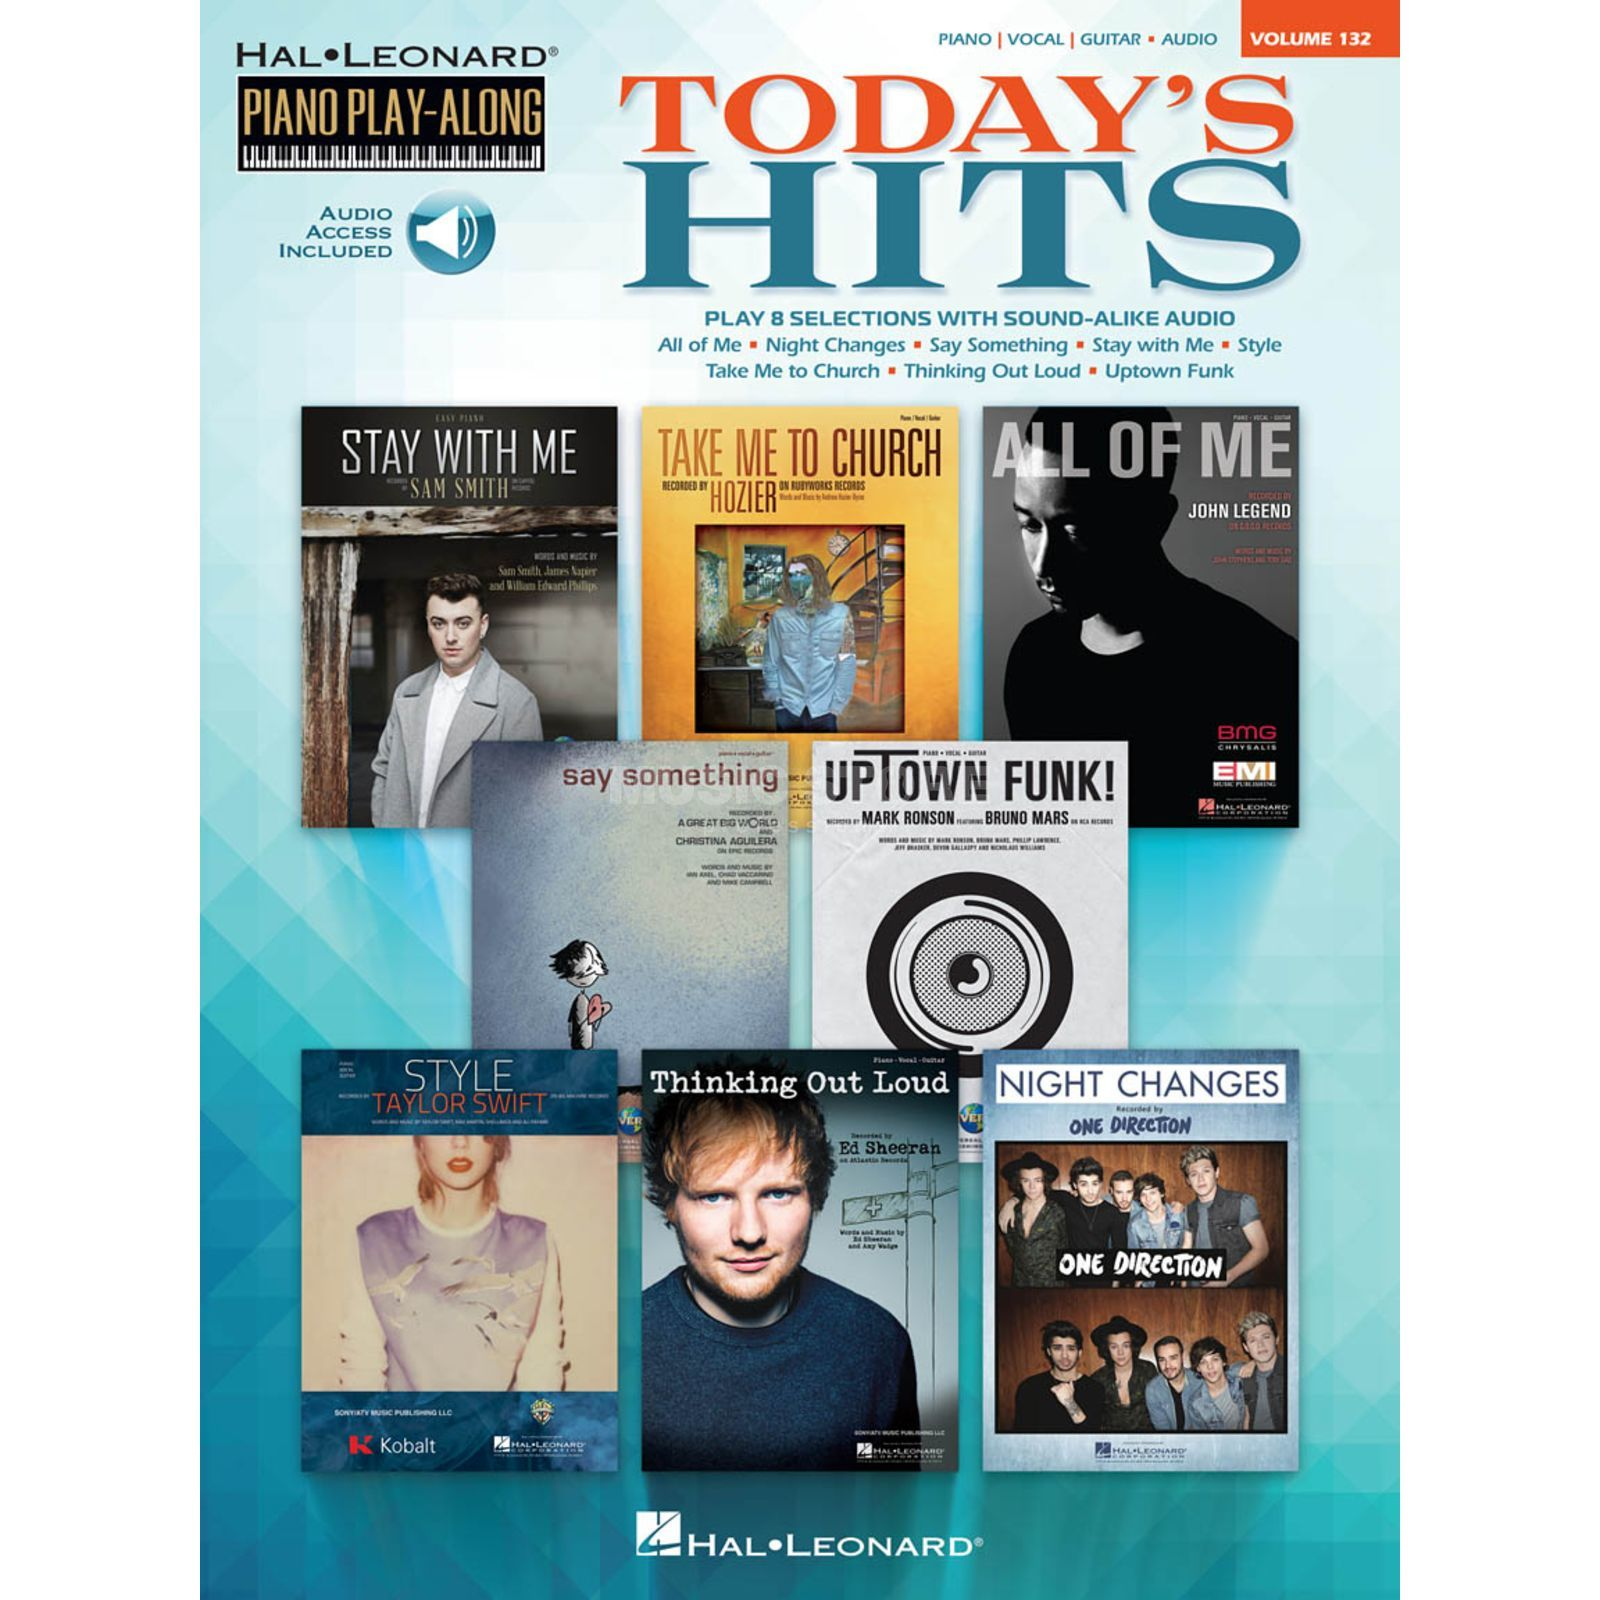 Hal Leonard Piano Play-Along Volume 132: Today's Hits Produktbillede